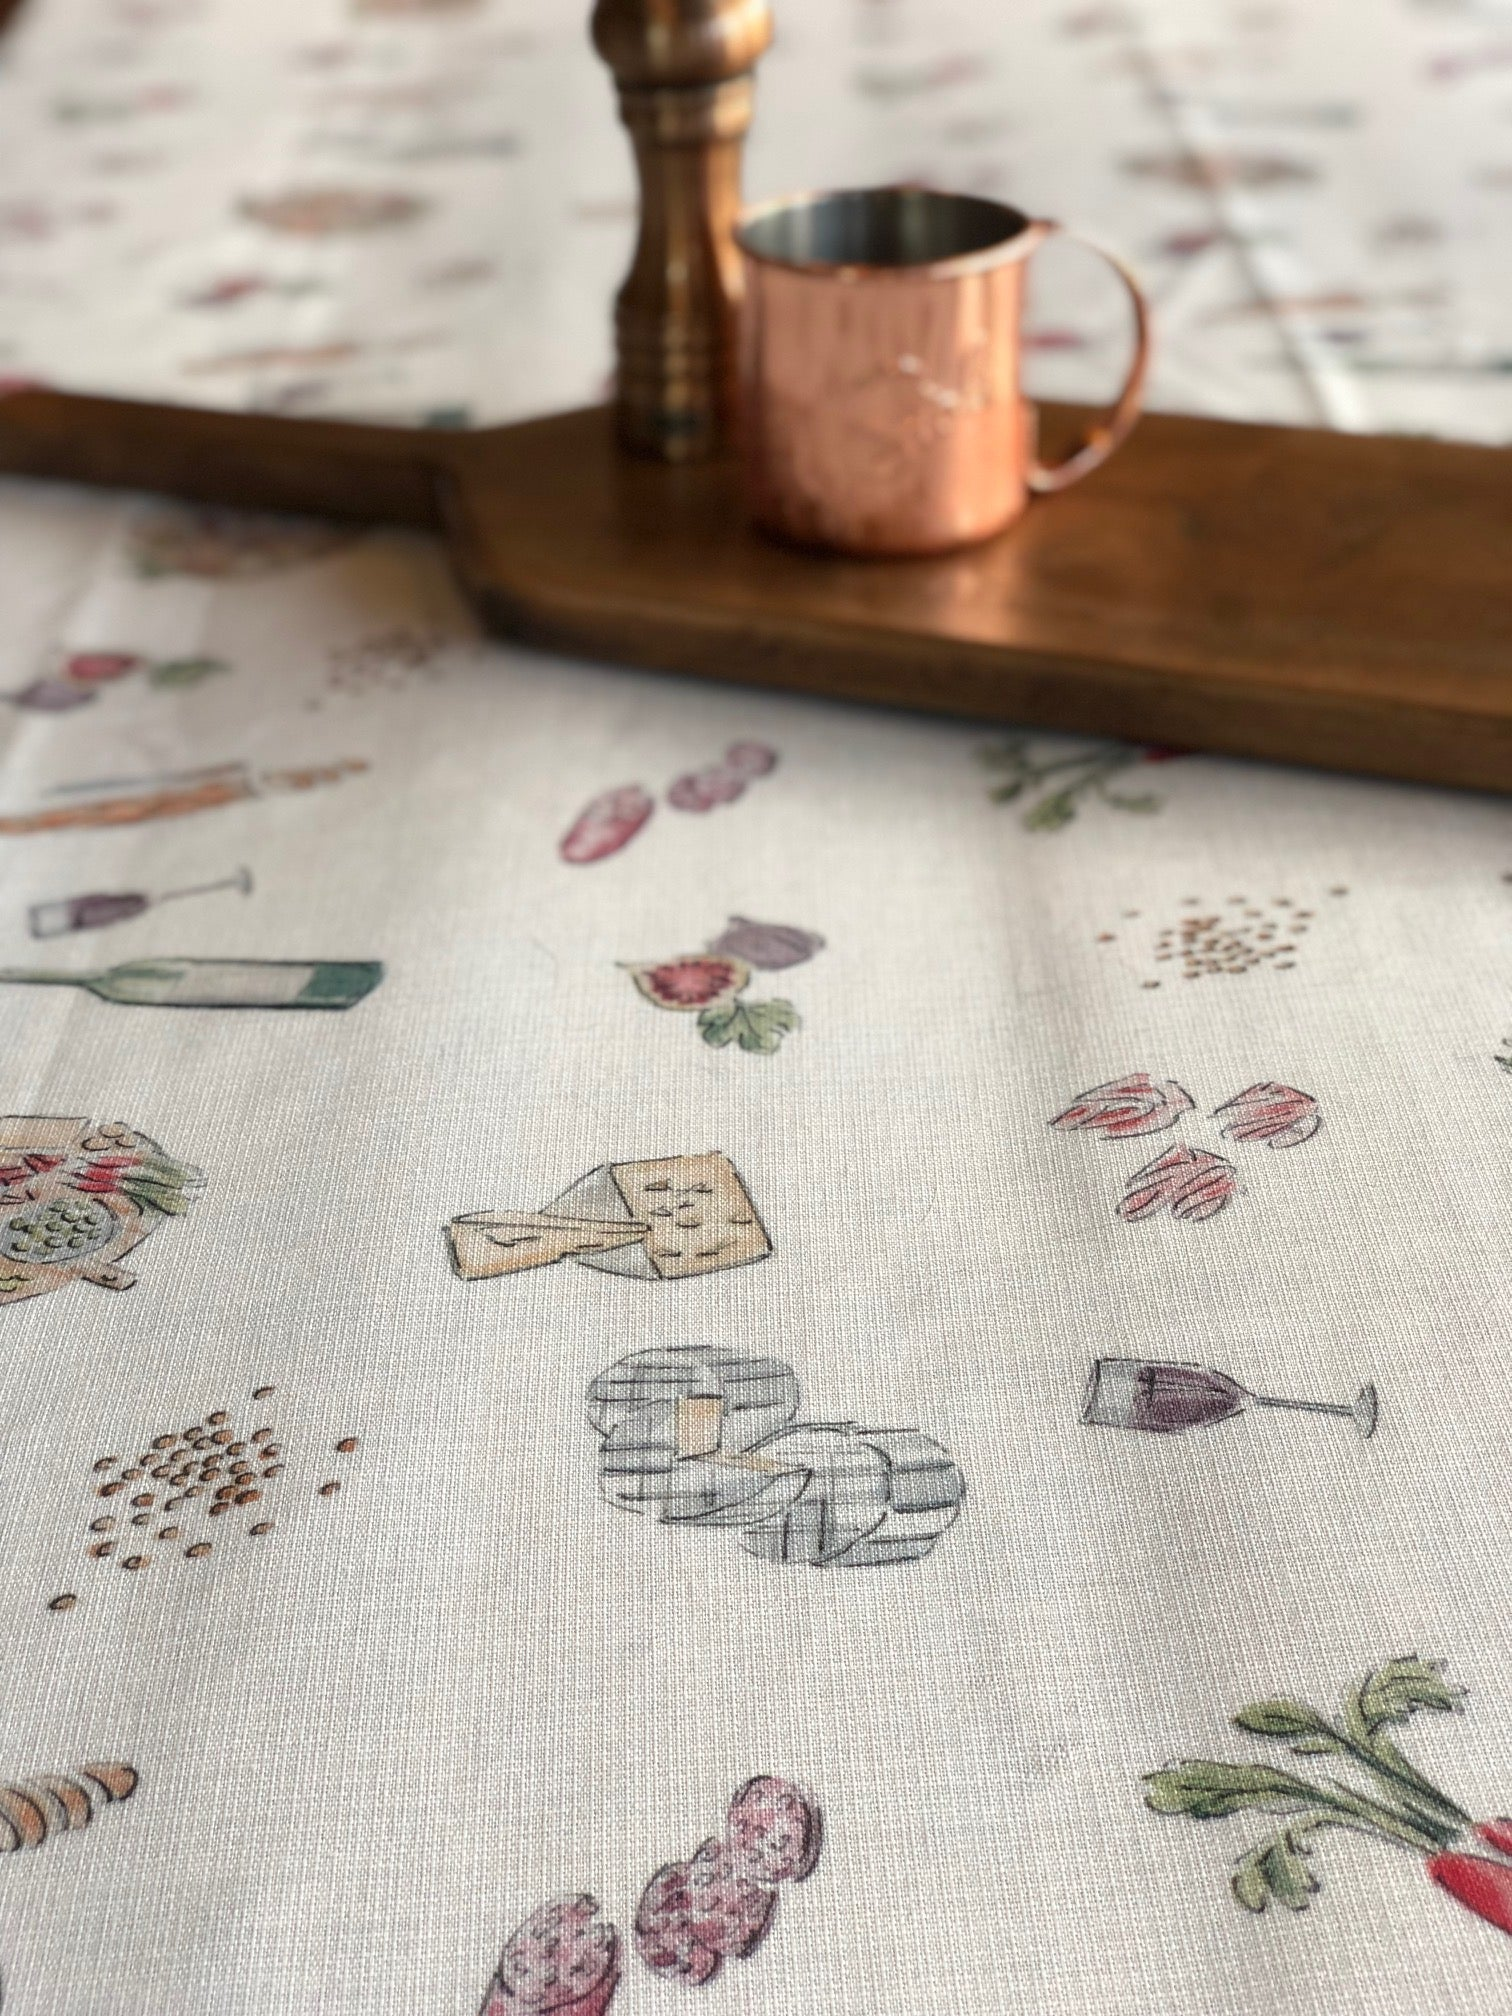 Nappe Vin Fromage et Charcuterie - Tablecloth Charcuterie, Wine and Cheese